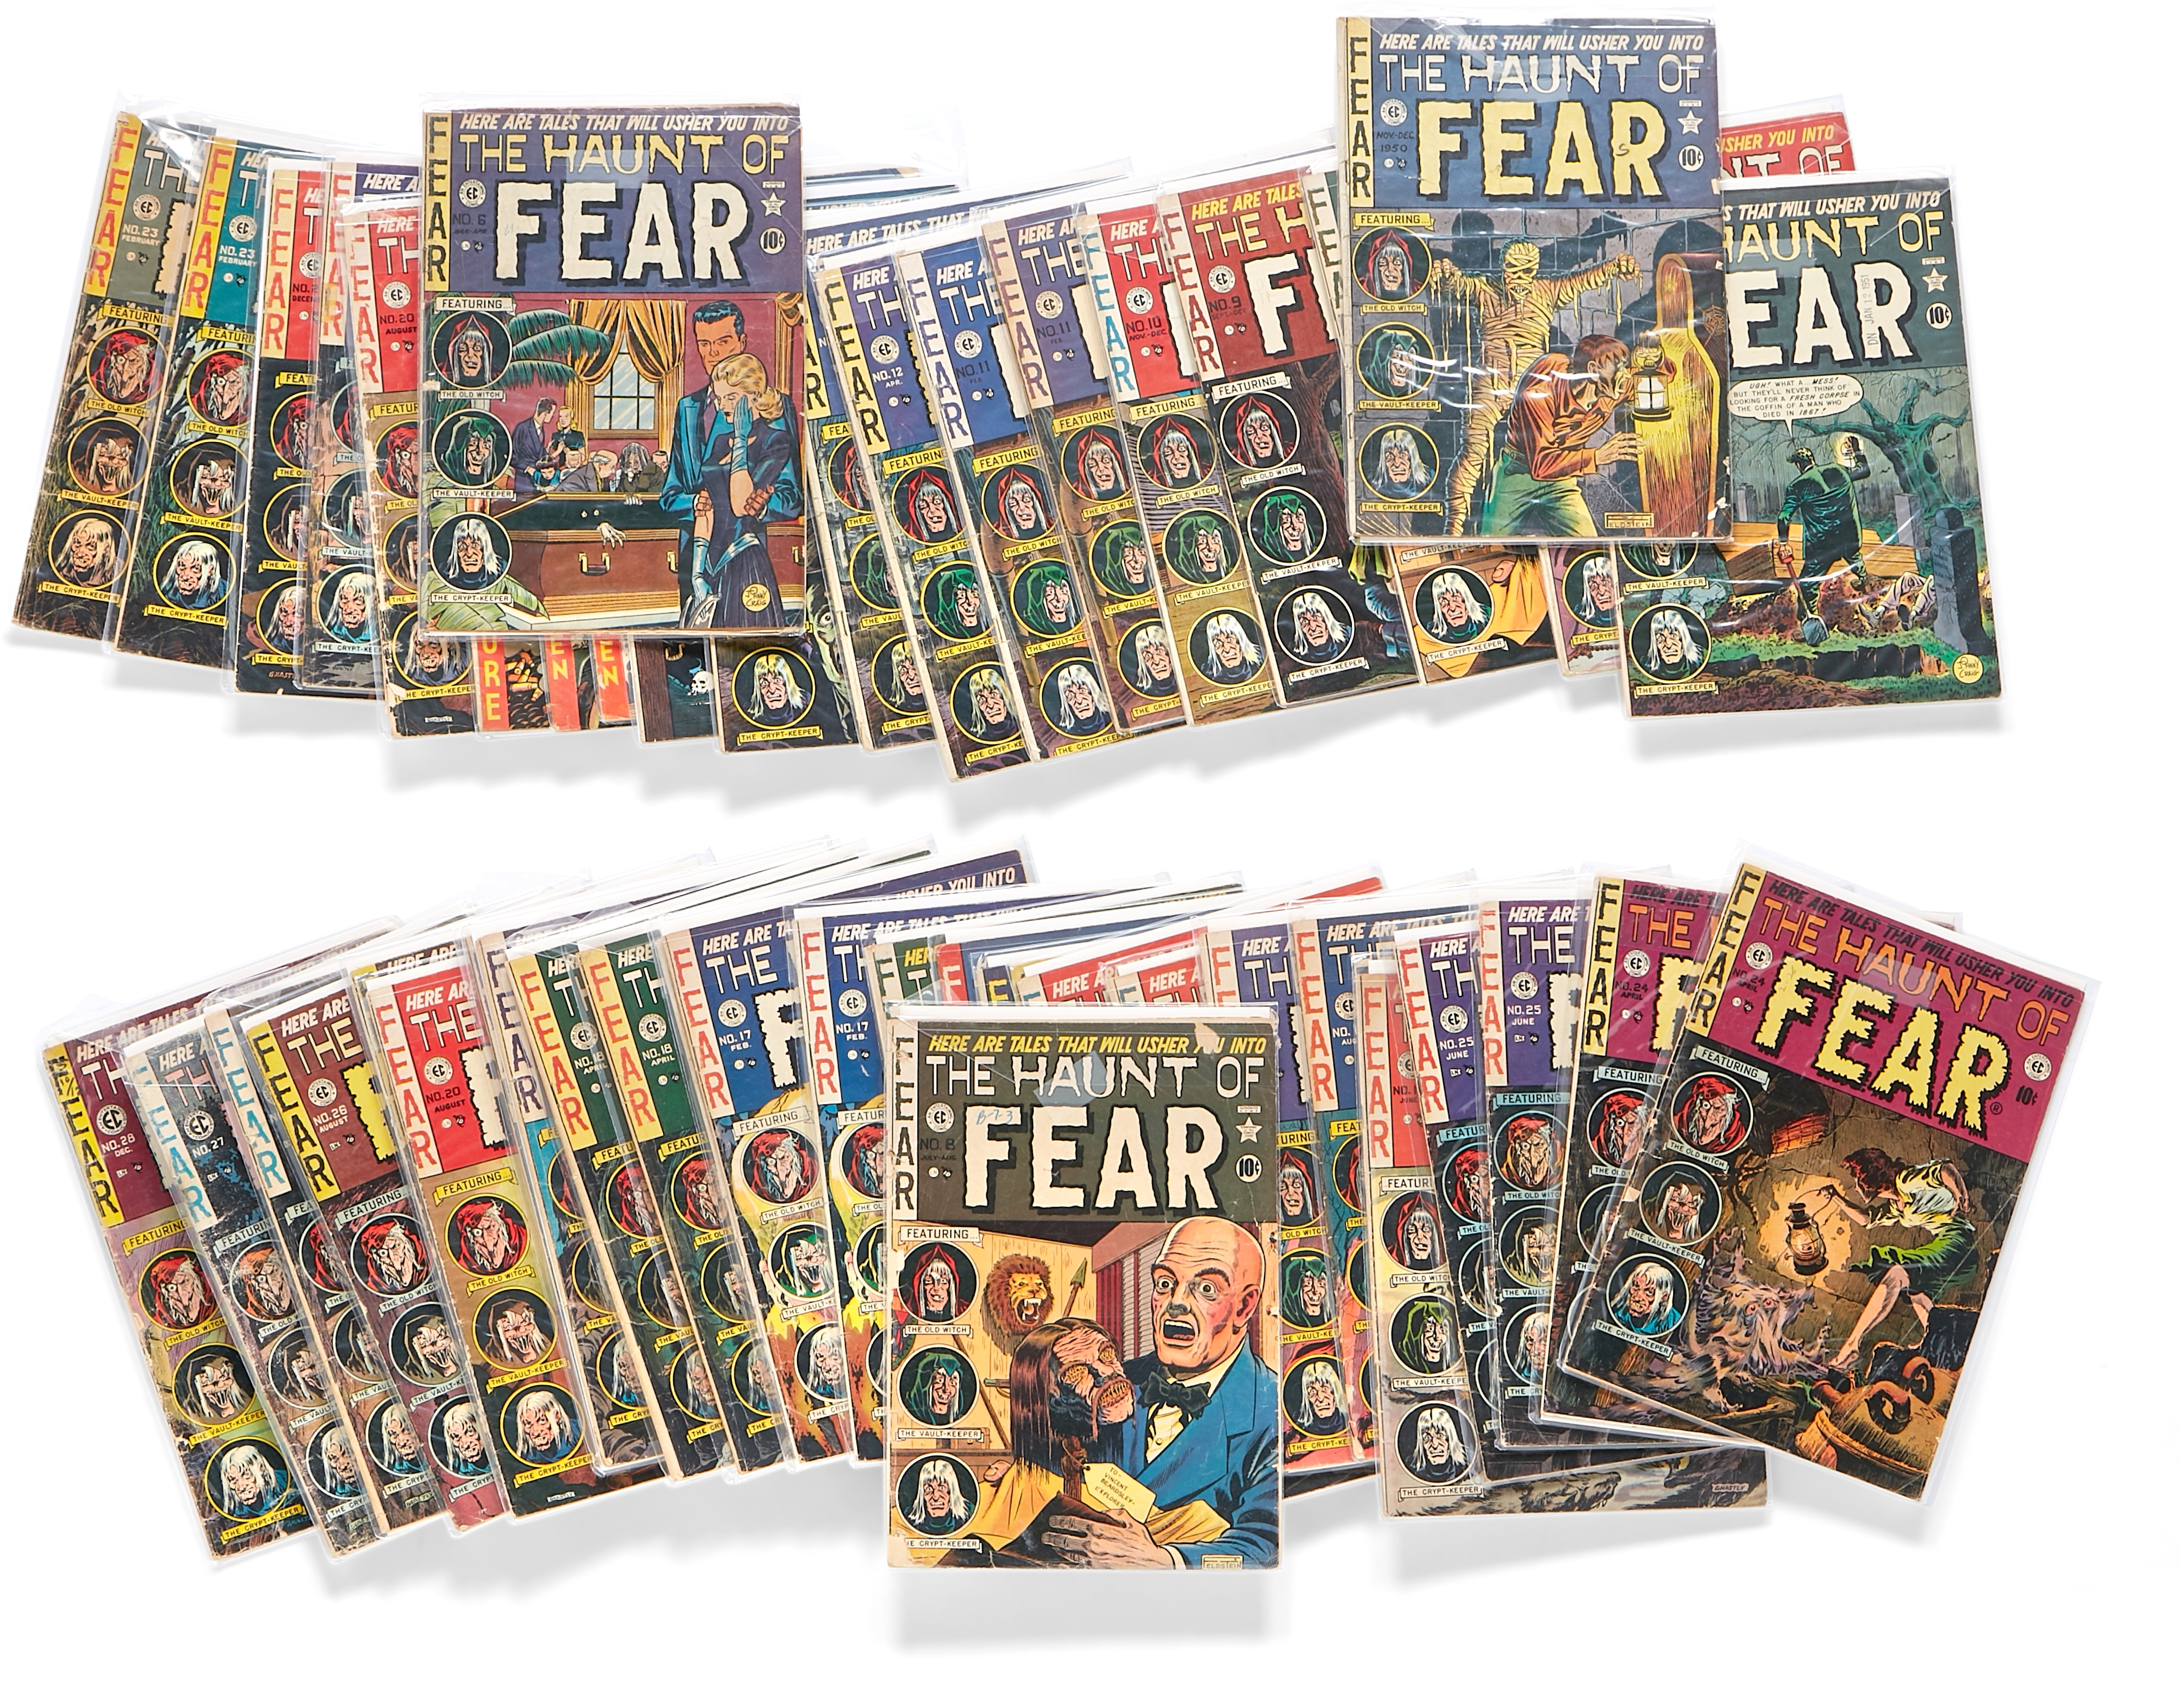 Lot 304 - A JERRY GARCIA GROUP OF 45 ISSUES OF EC COMICS THE HAUNT OF FEAR 1950s